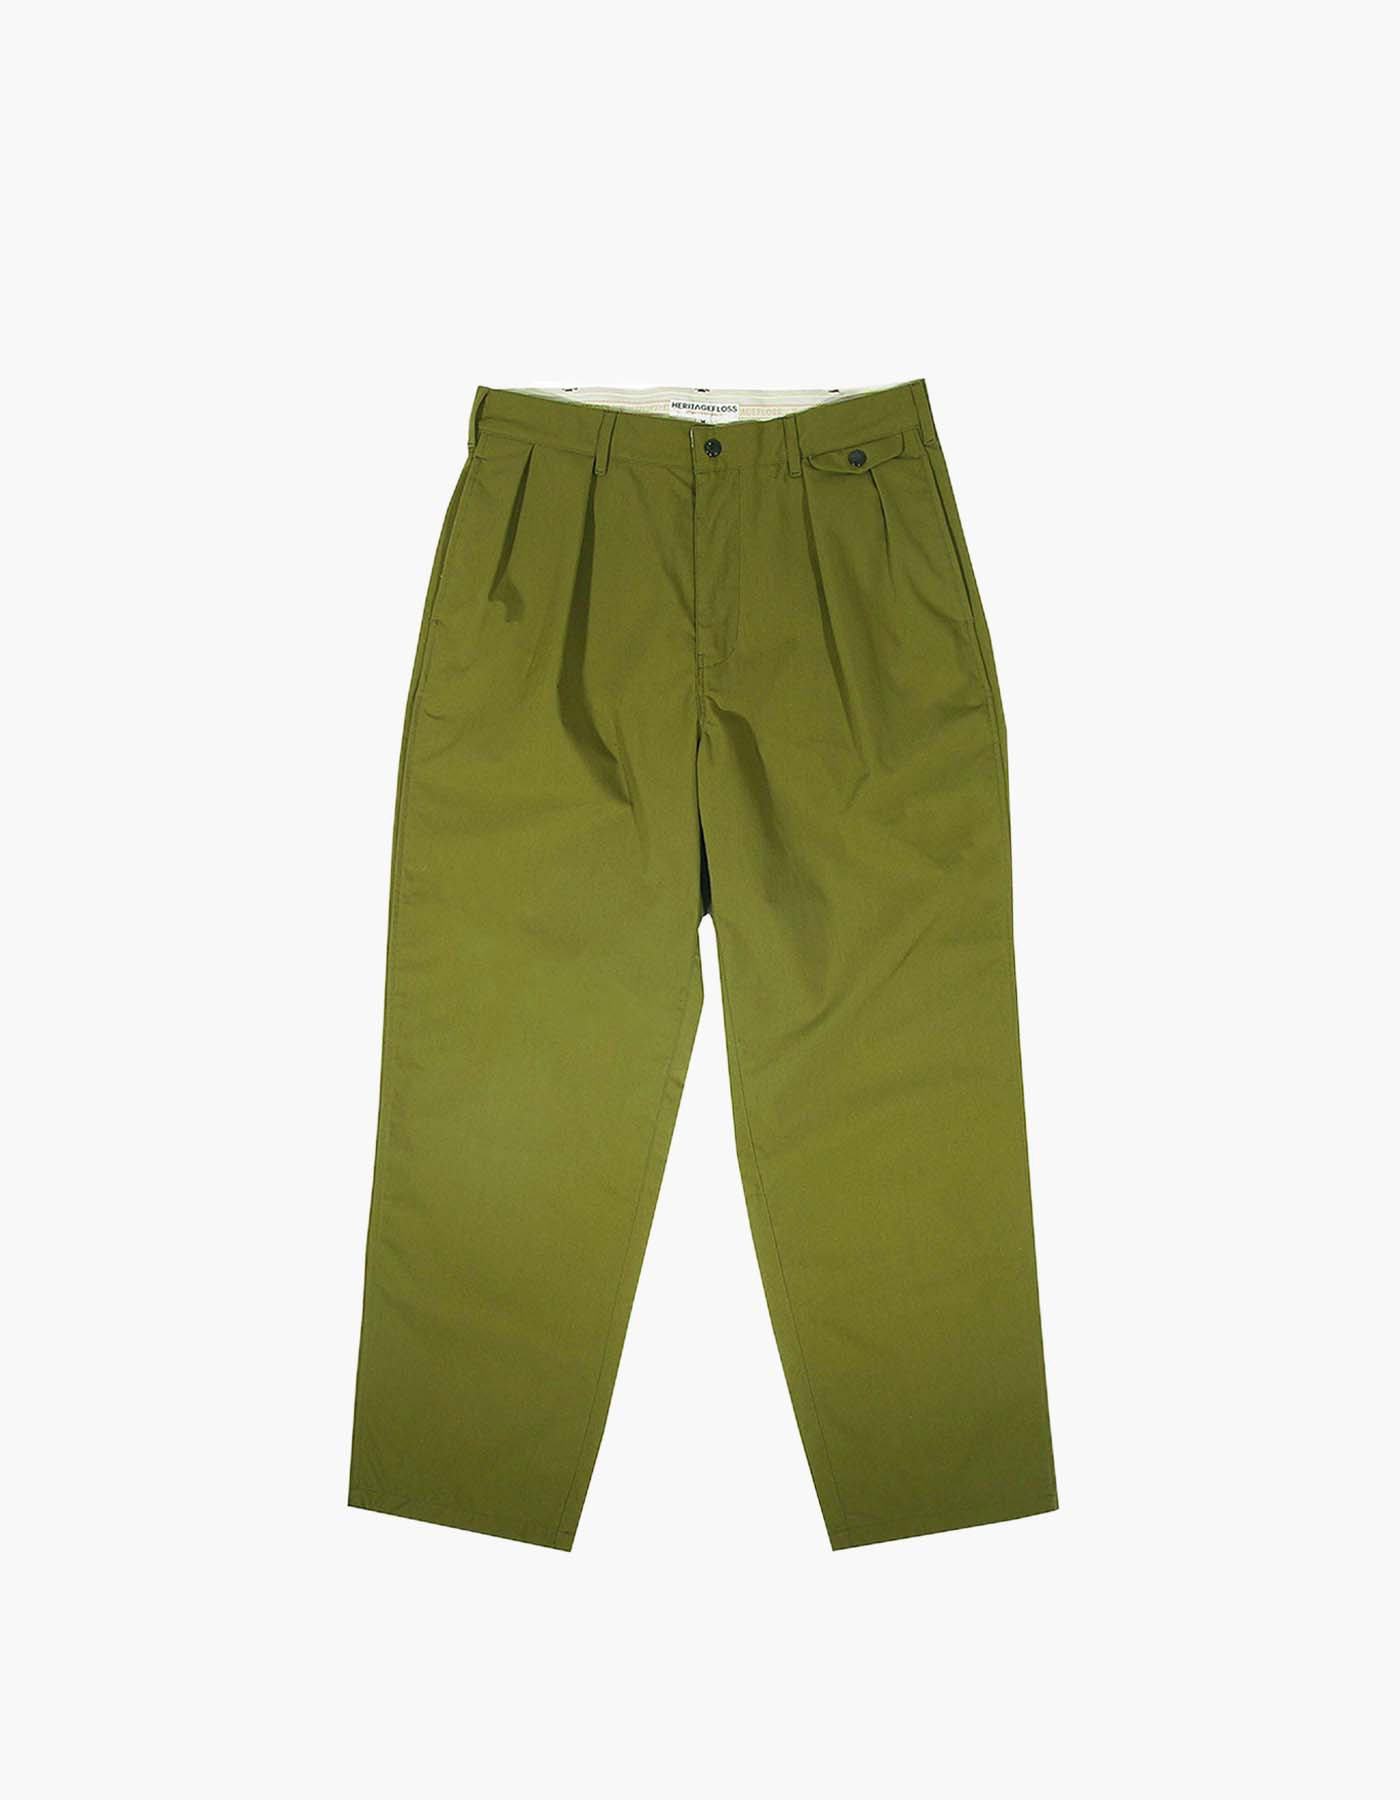 QUICK-DRYING NYLON CHINO PANTS / KHAKI